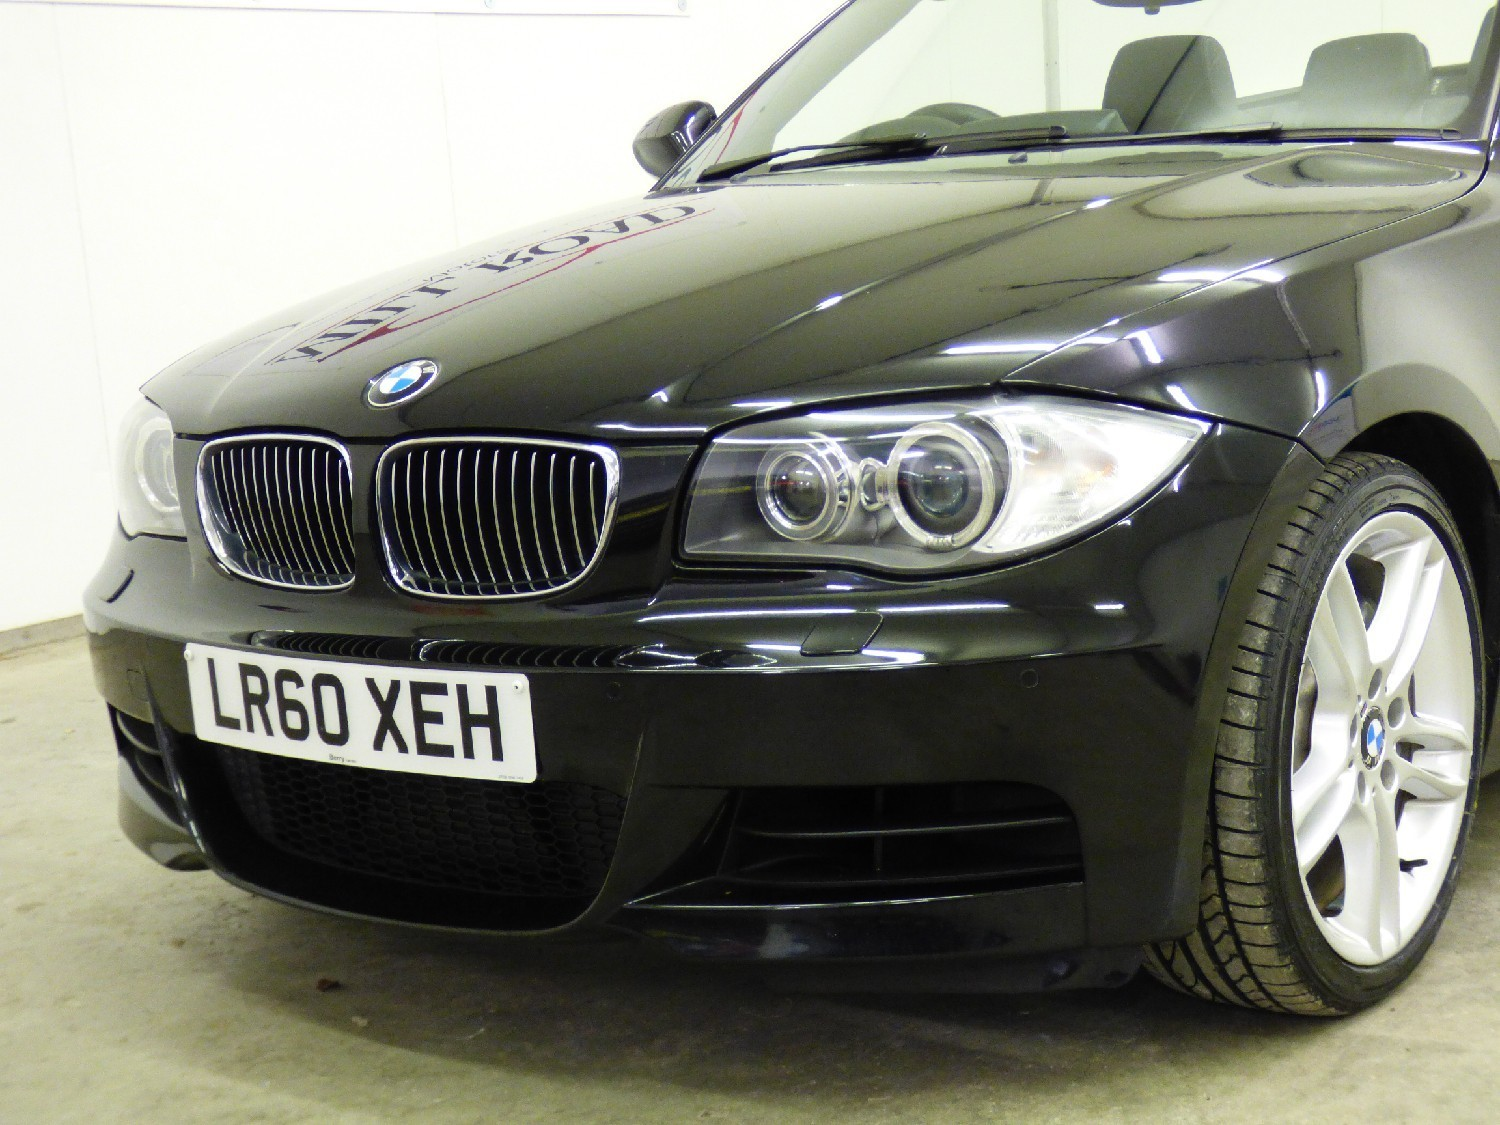 used bmw 1 series in barnstaple devon mill road motors used bmw 1 series in barnstaple devon